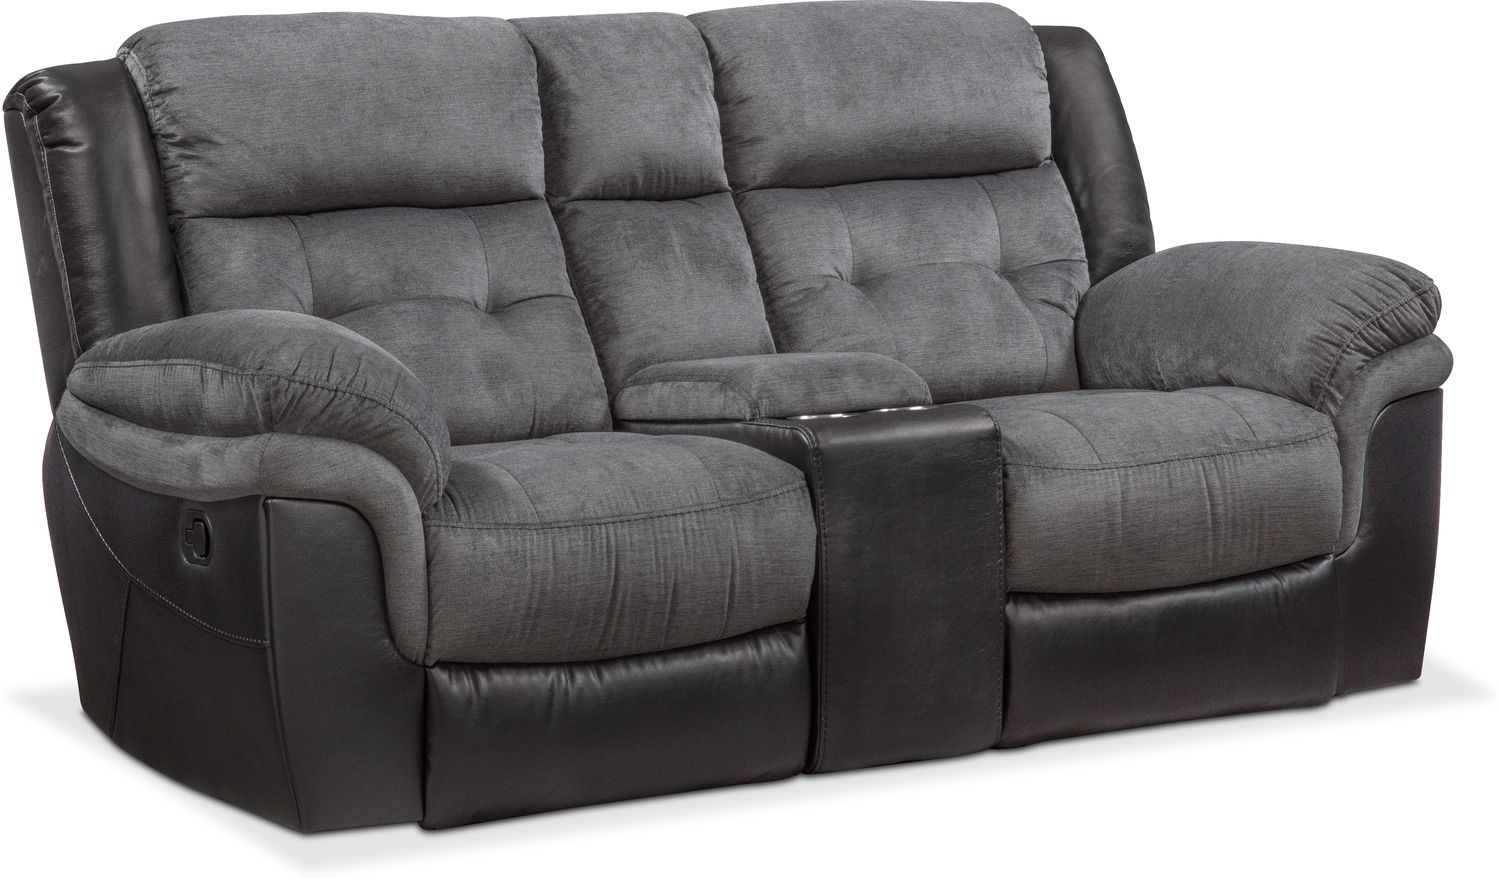 Sofas For Sale Pay Monthly Tacoma Manual Reclining Sofa And Loveseat Set - Black